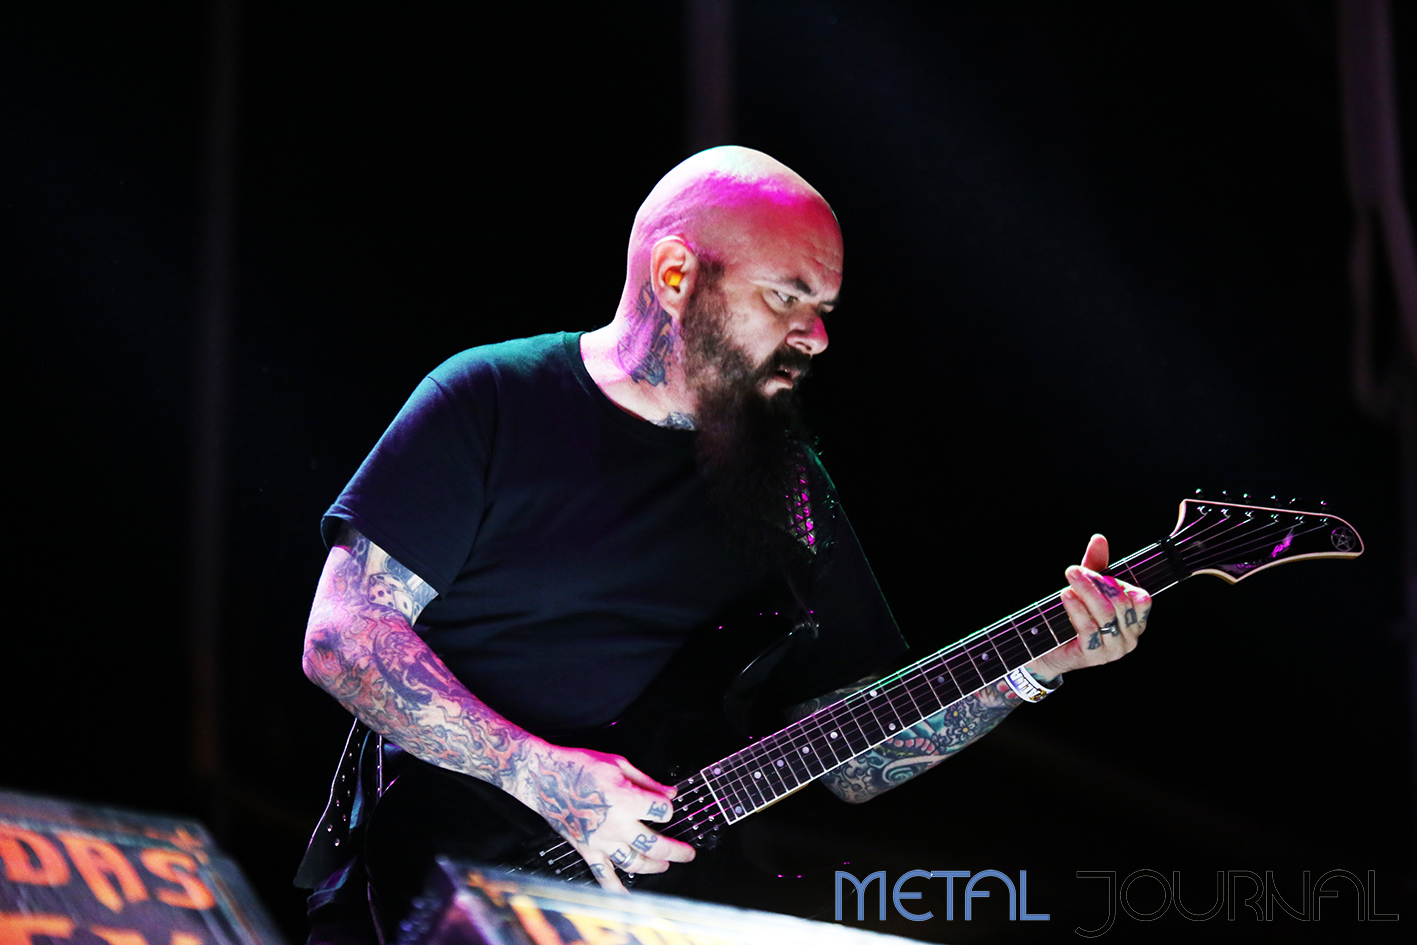 deicide - leyendas del rock 2019 metal journal pic 2